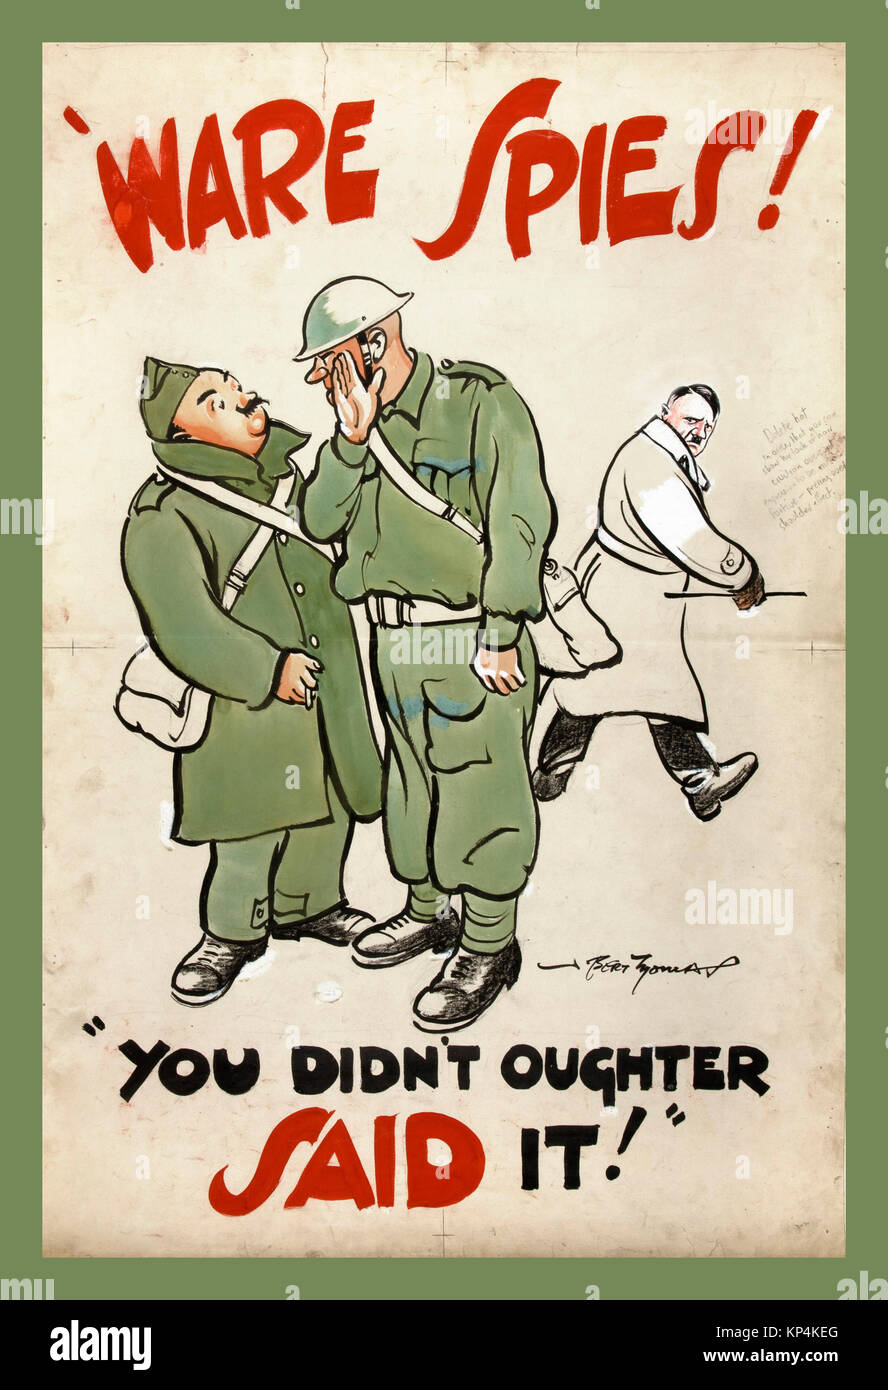 1940's WW2 UK British propaganda poster featuring British Army Tommies soldiers discussing anti-rumour and careless - Stock Image